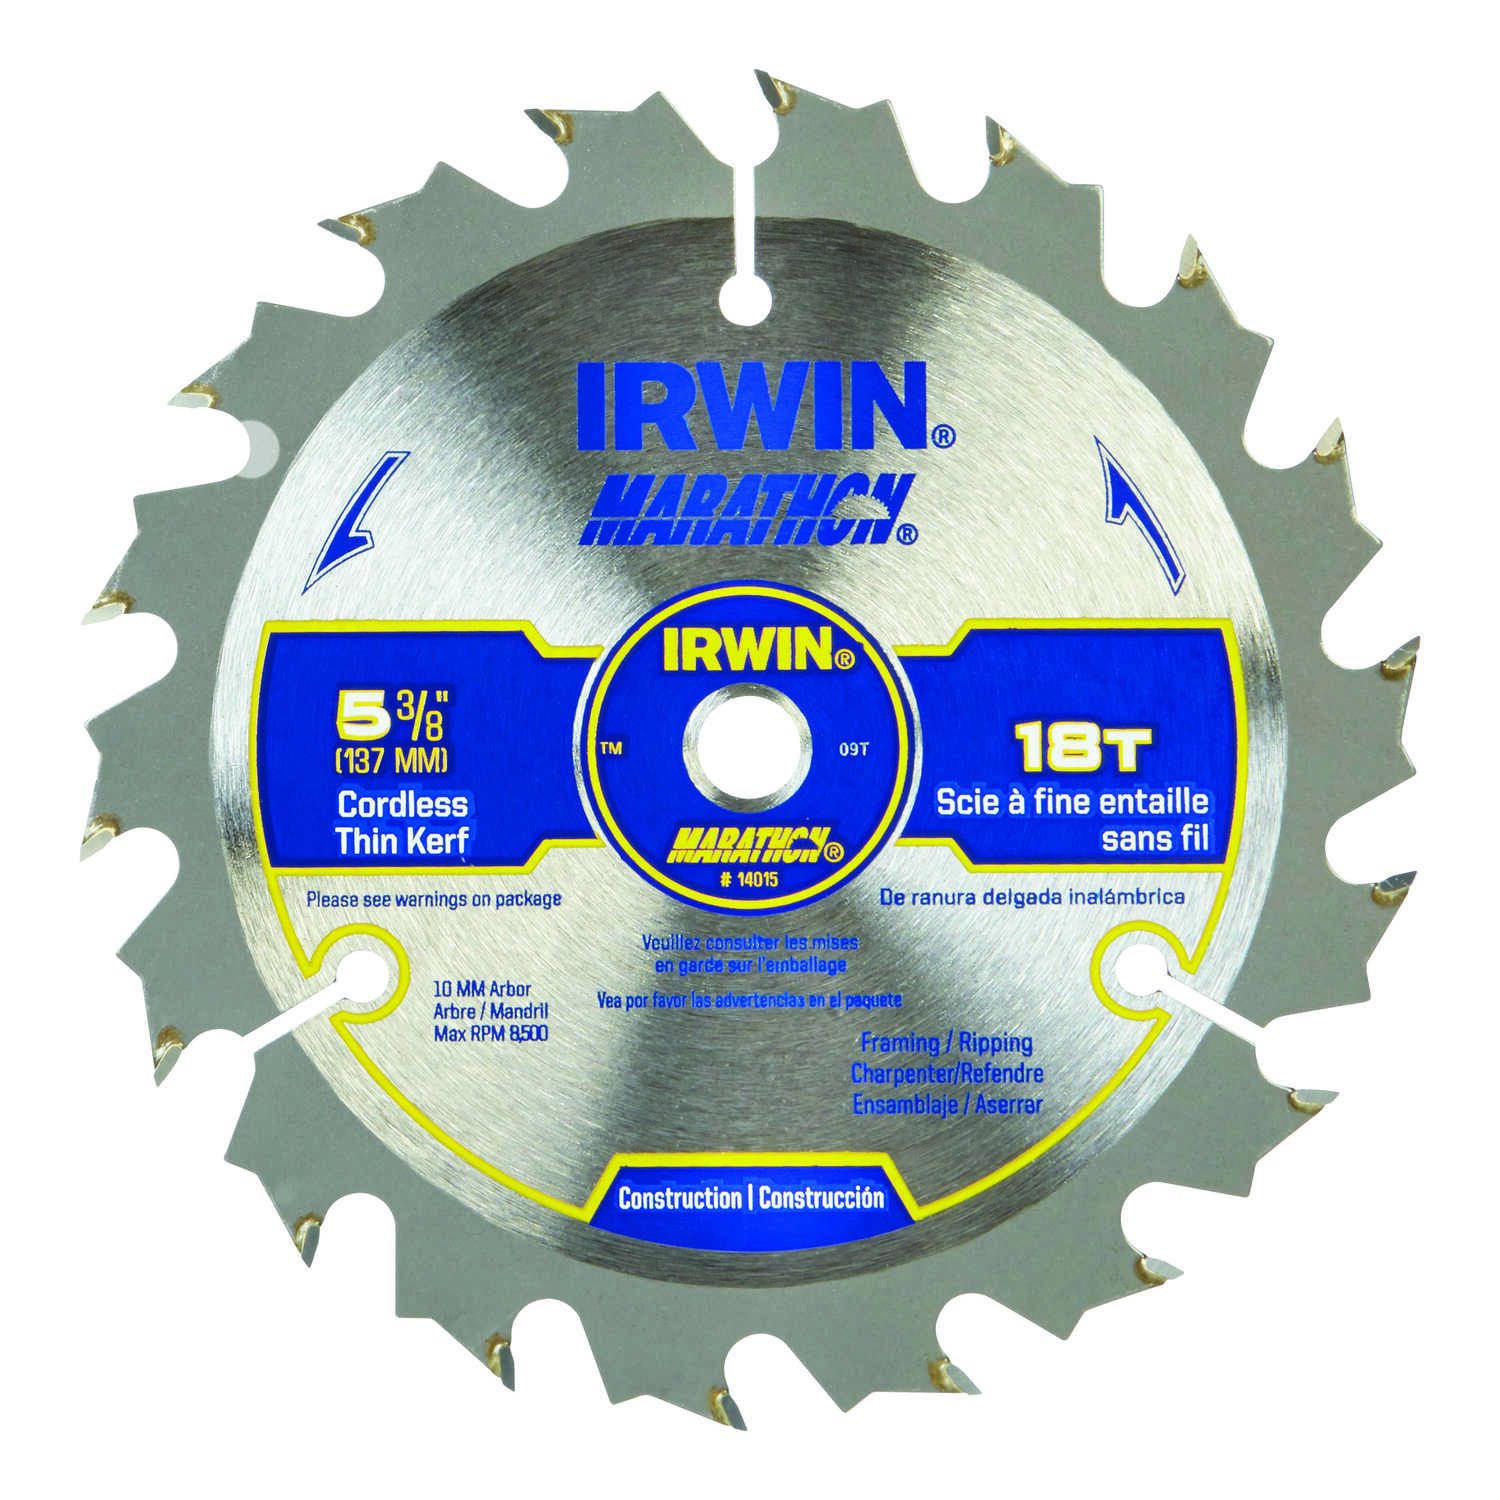 Irwin  Marathon  5-3/8 in. Dia. x 10 mm  Carbide  Circular Saw Blade  18 teeth 1 pc.